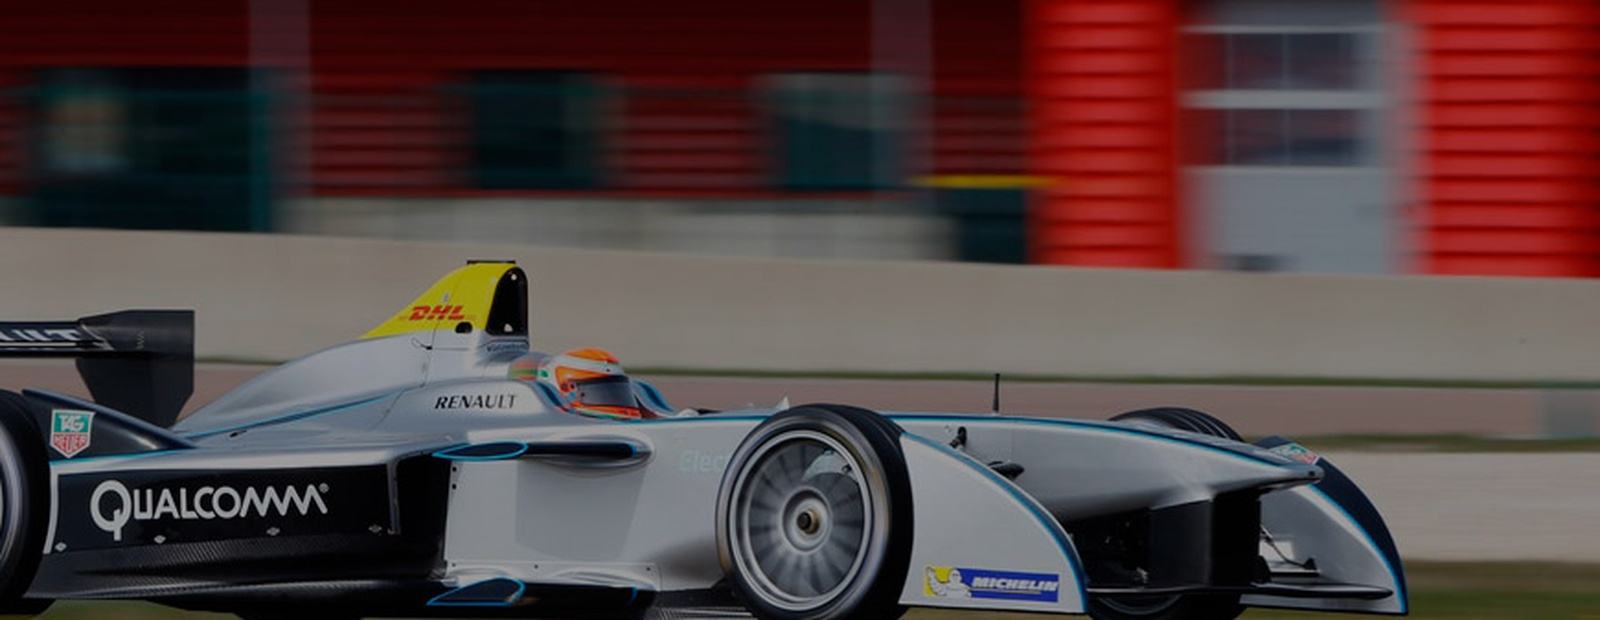 SMALLER, LIGHTER, FASTER: THE McLAREN TECHNOLOGY POWERING FORMULA E